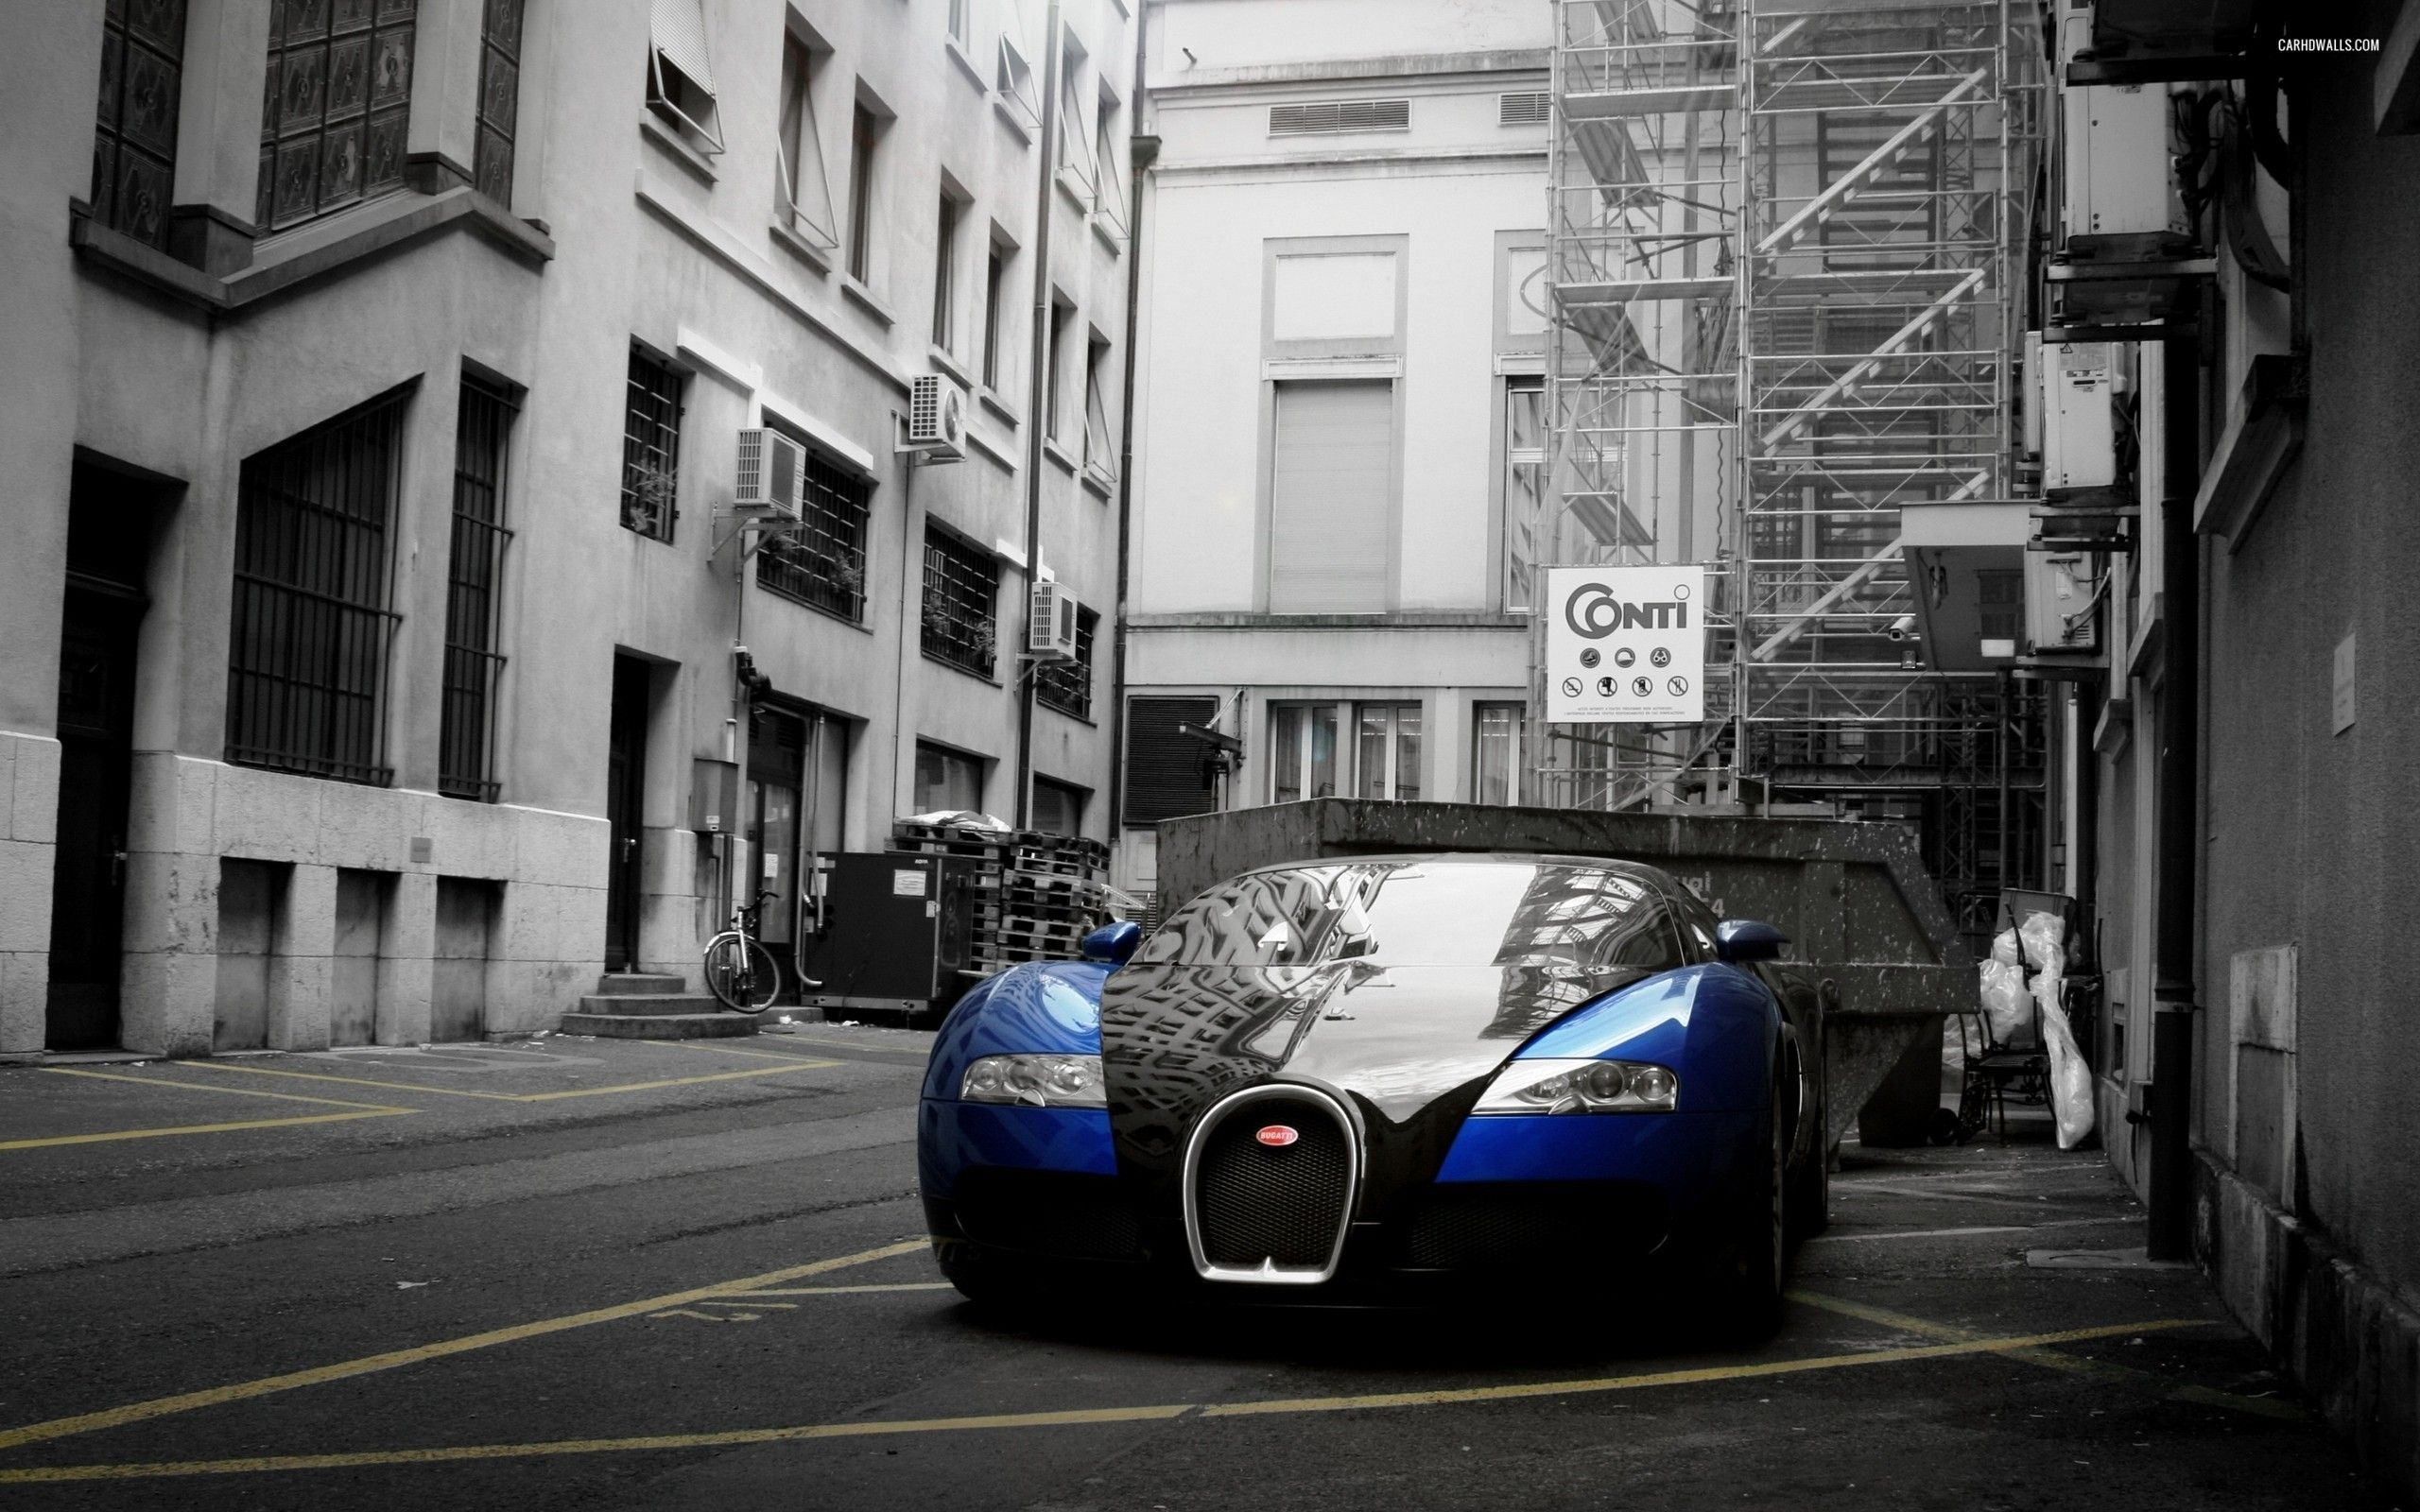 Bugatti veyron car wallpapers hd in high quality for your desktop pc http